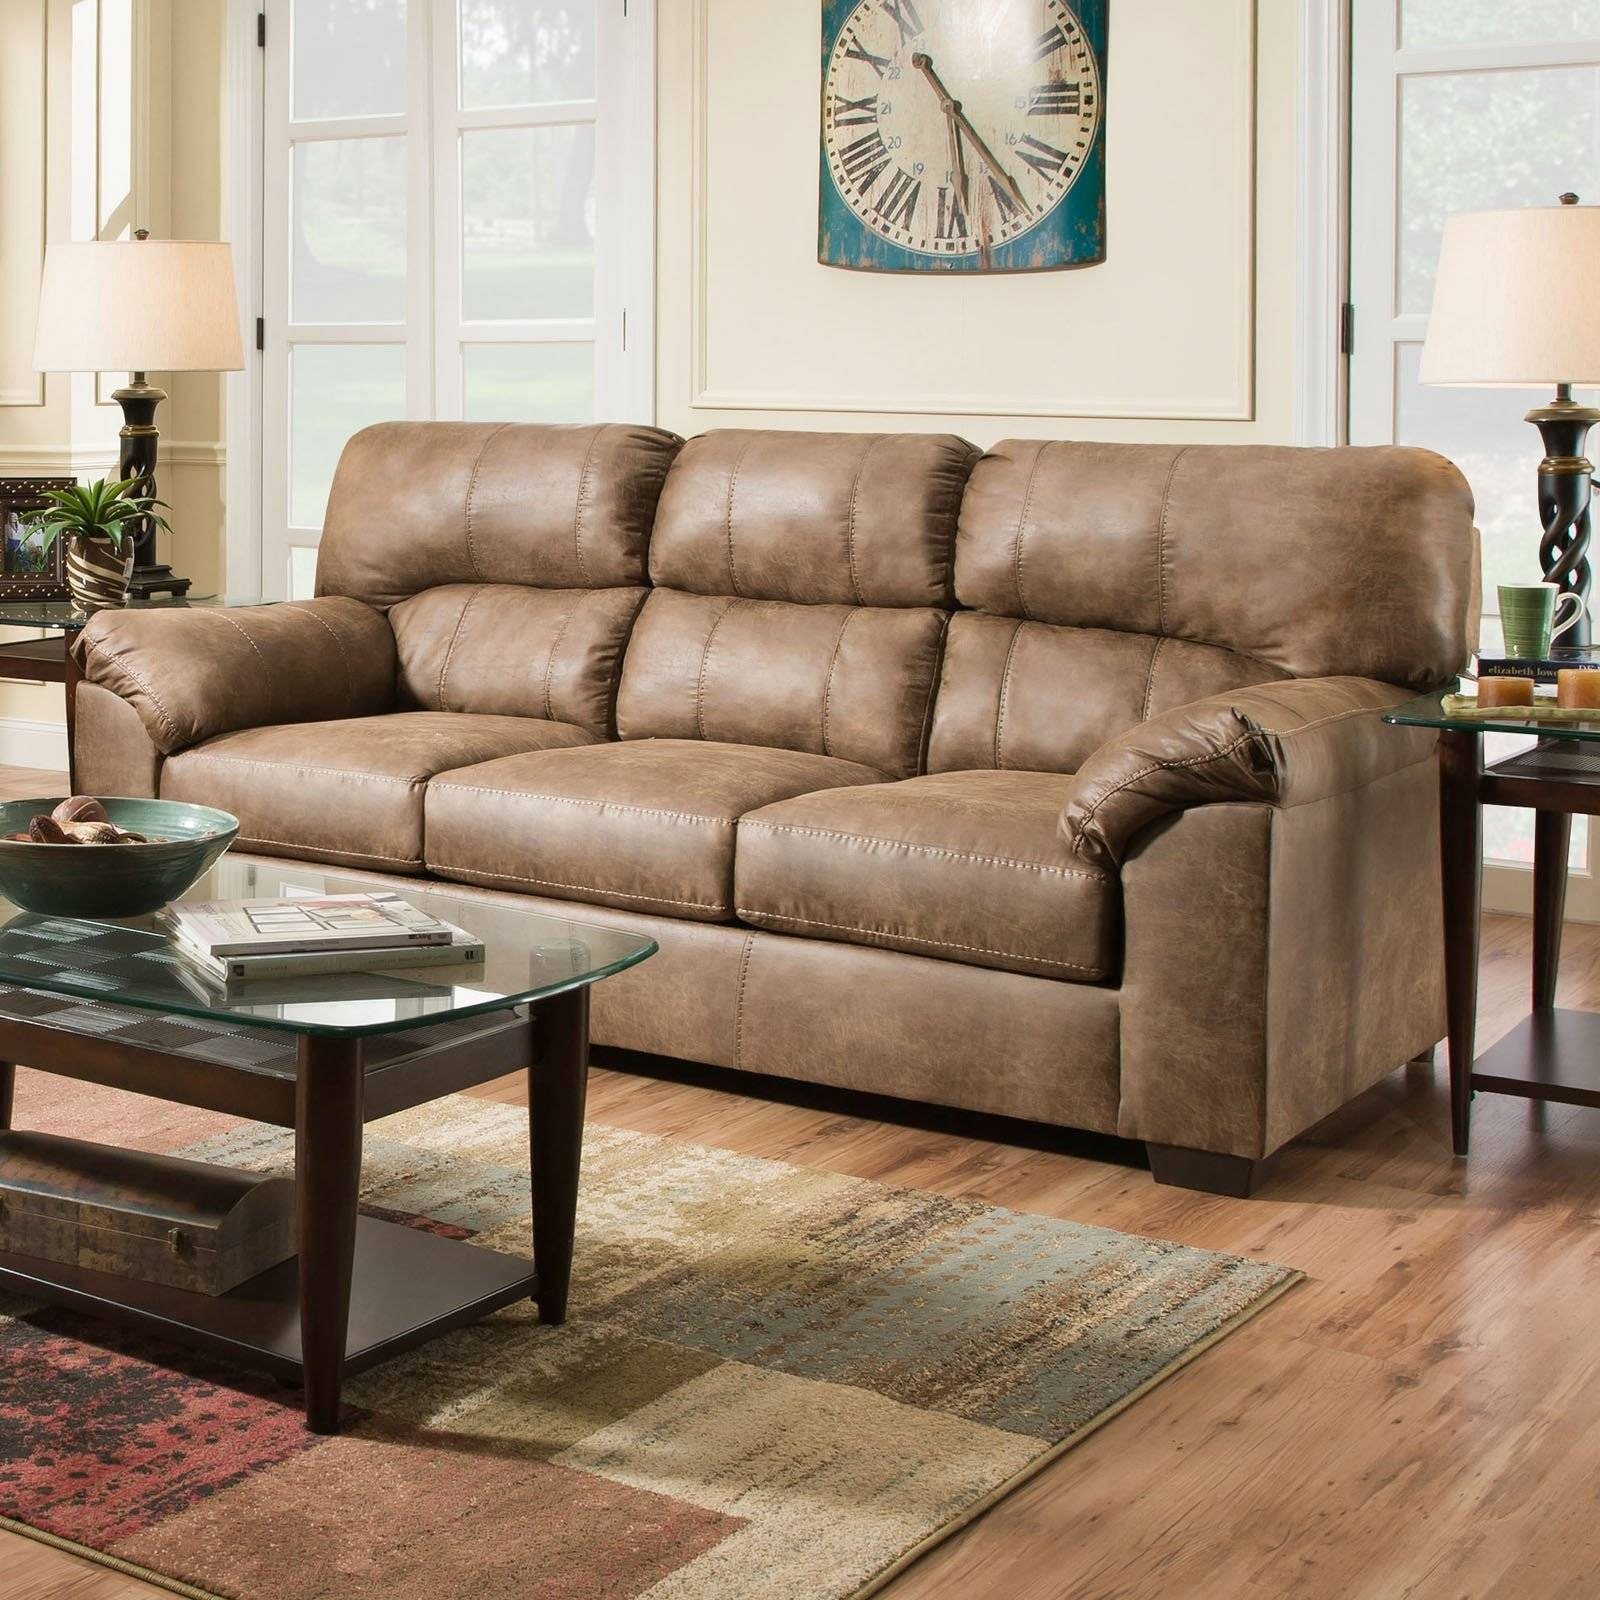 Furniture: Simmons Sofa For Comfortable Seating — Threestems inside Big Lots Simmons Furniture (Image 11 of 15)